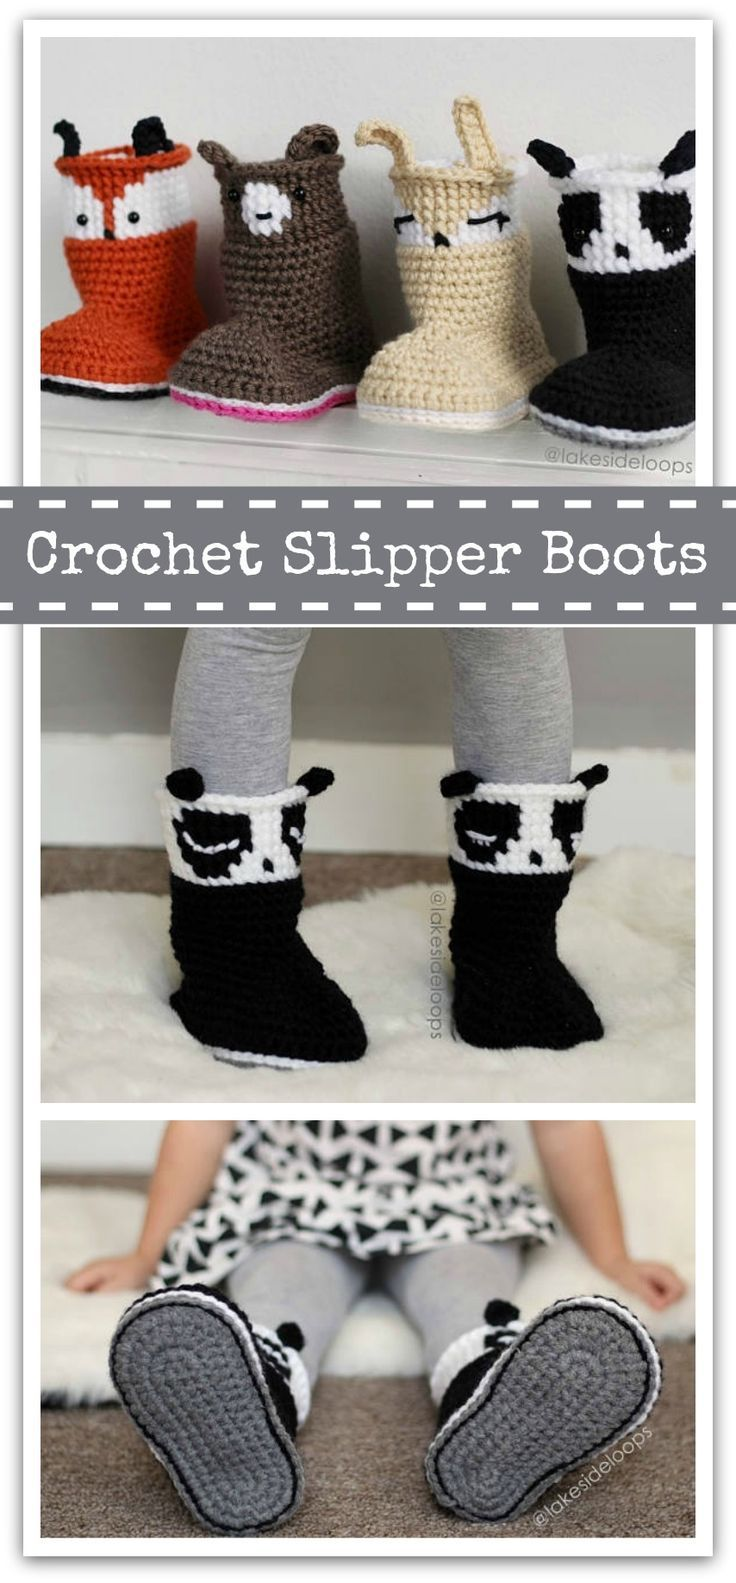 Crochet Pattern - Bailey Slipper Boots/Booties - makes sizes Baby - Kids - Instant PDF download #ad #affiliate